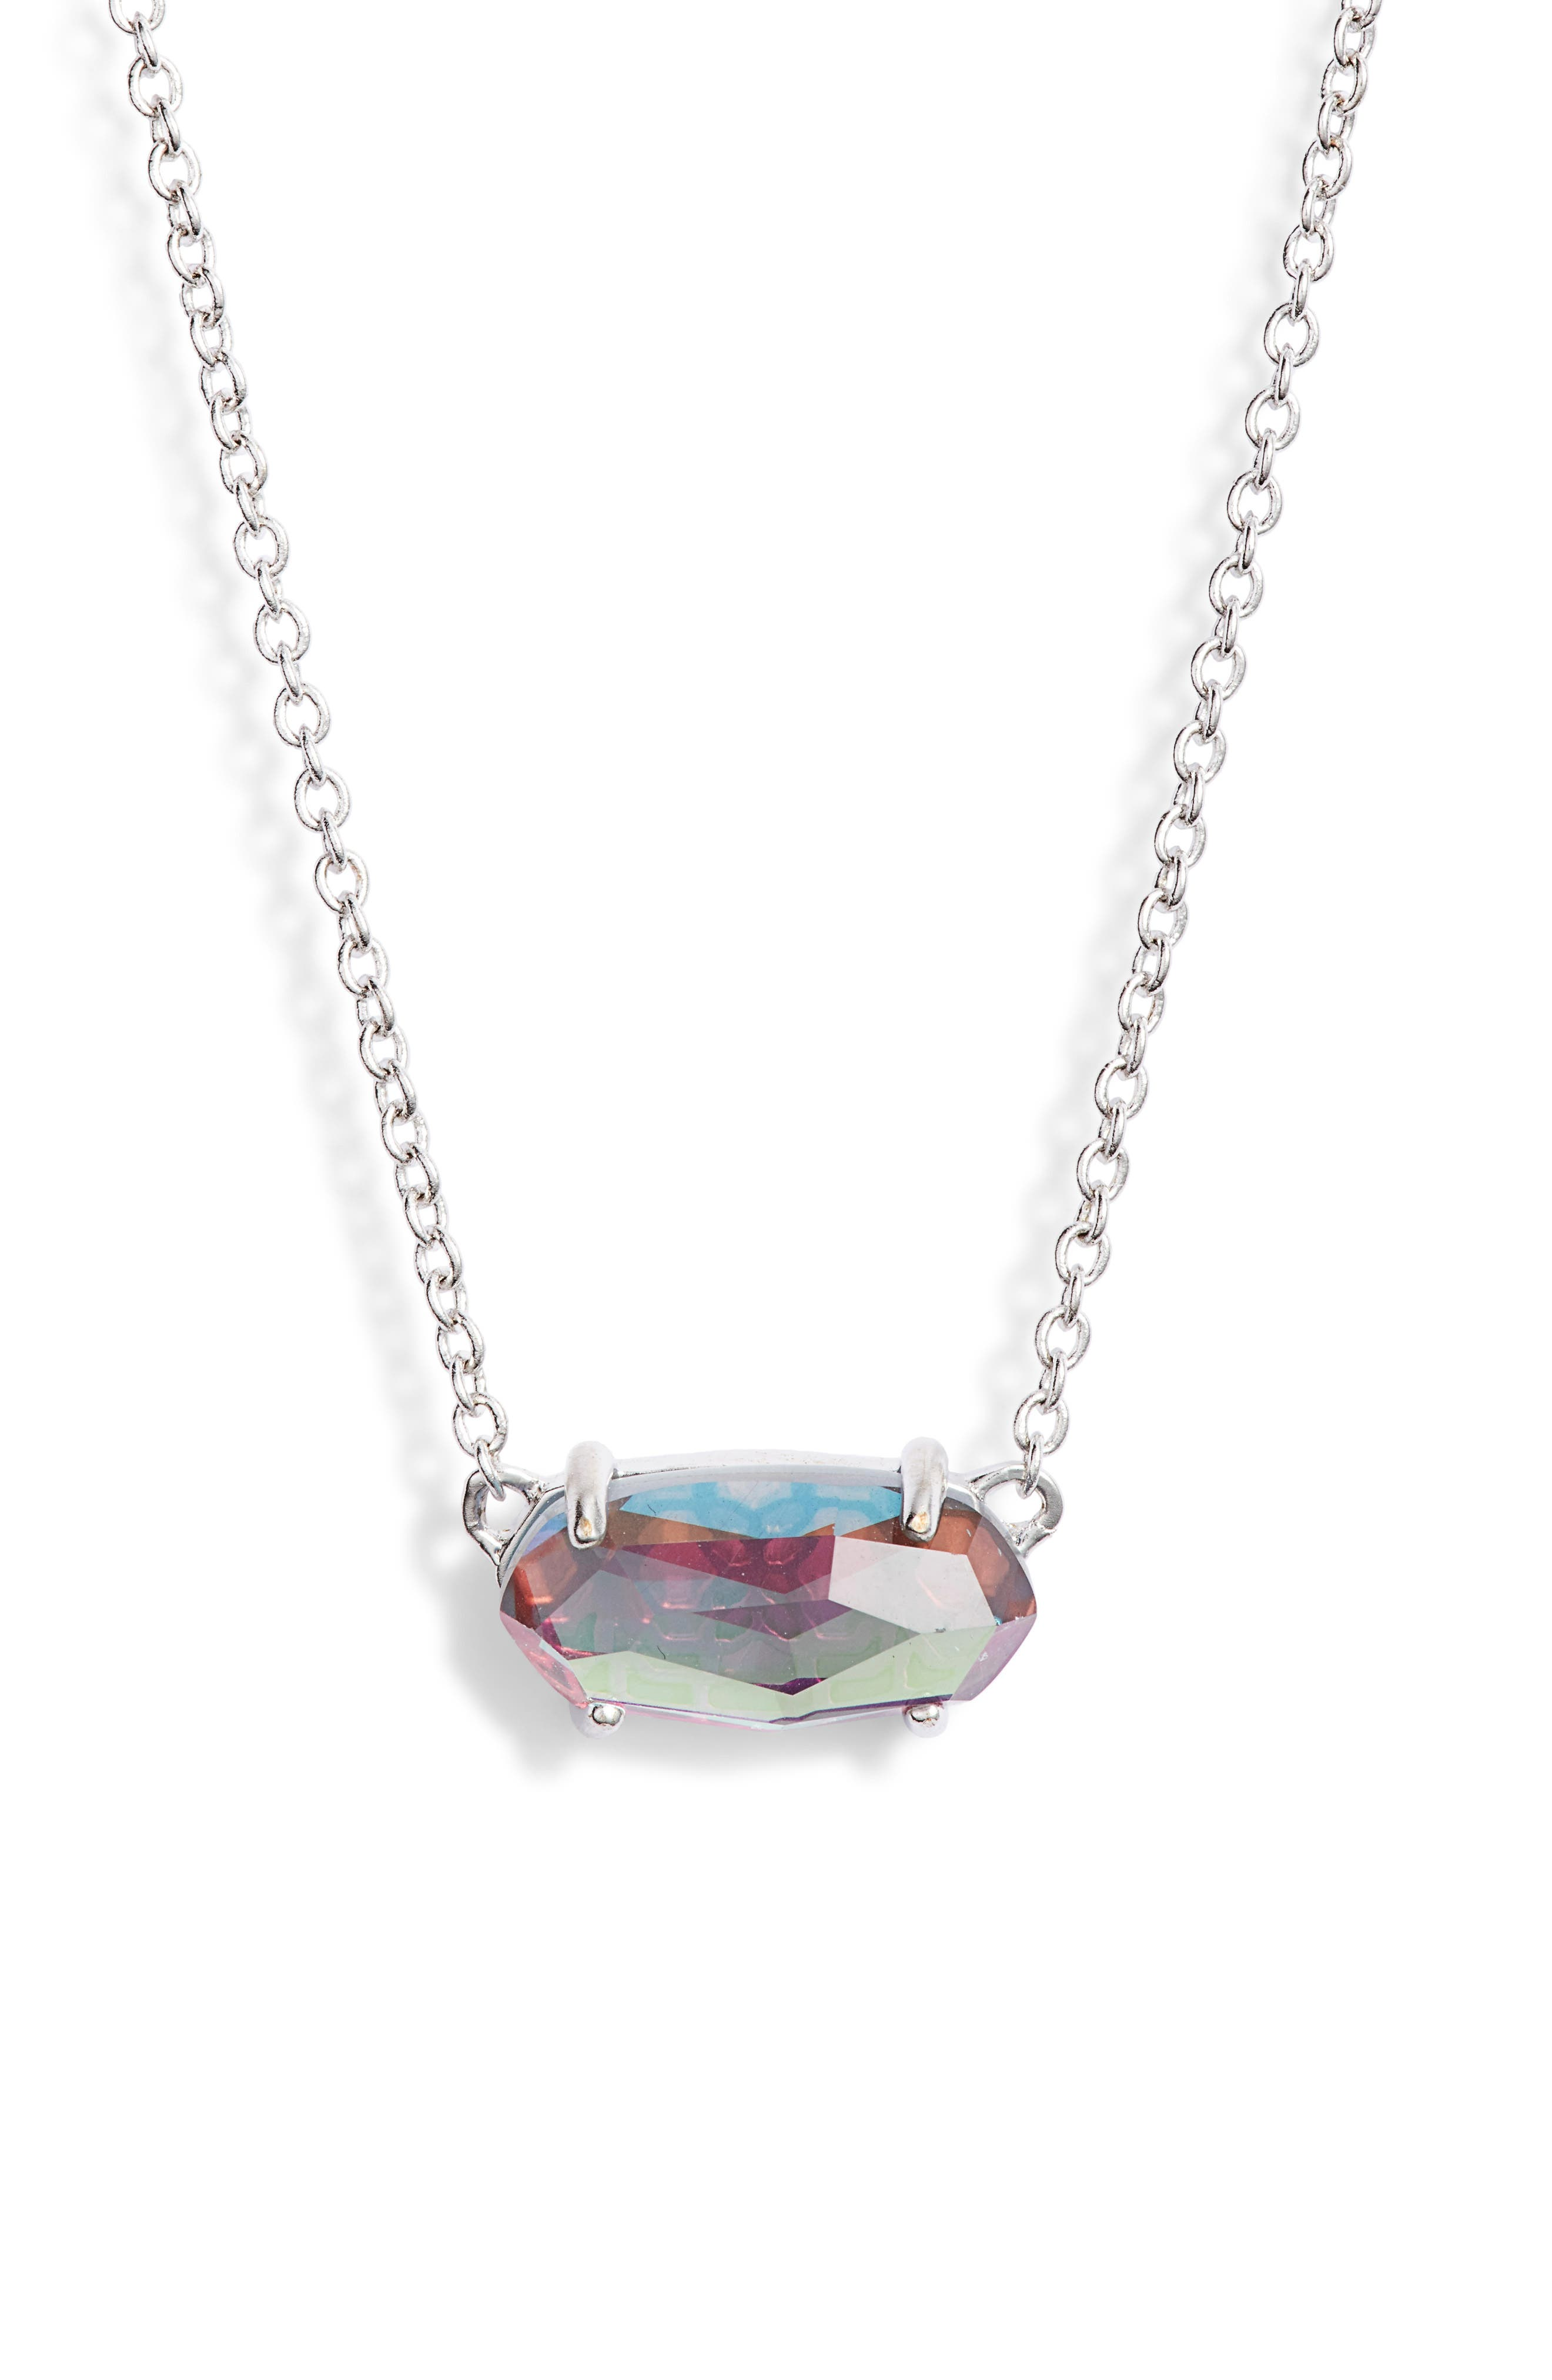 KENDRA SCOTT, Ever Pendant Necklace, Main thumbnail 1, color, GRAY DICHROIC GLASS/ SILVER